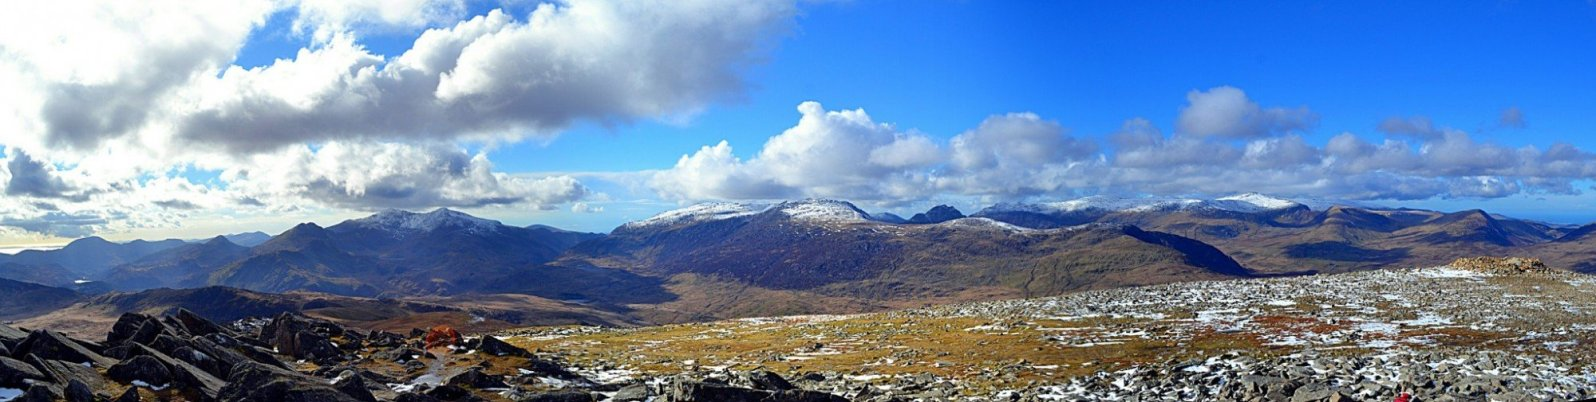 The amazing view of Snowdonia from the summit